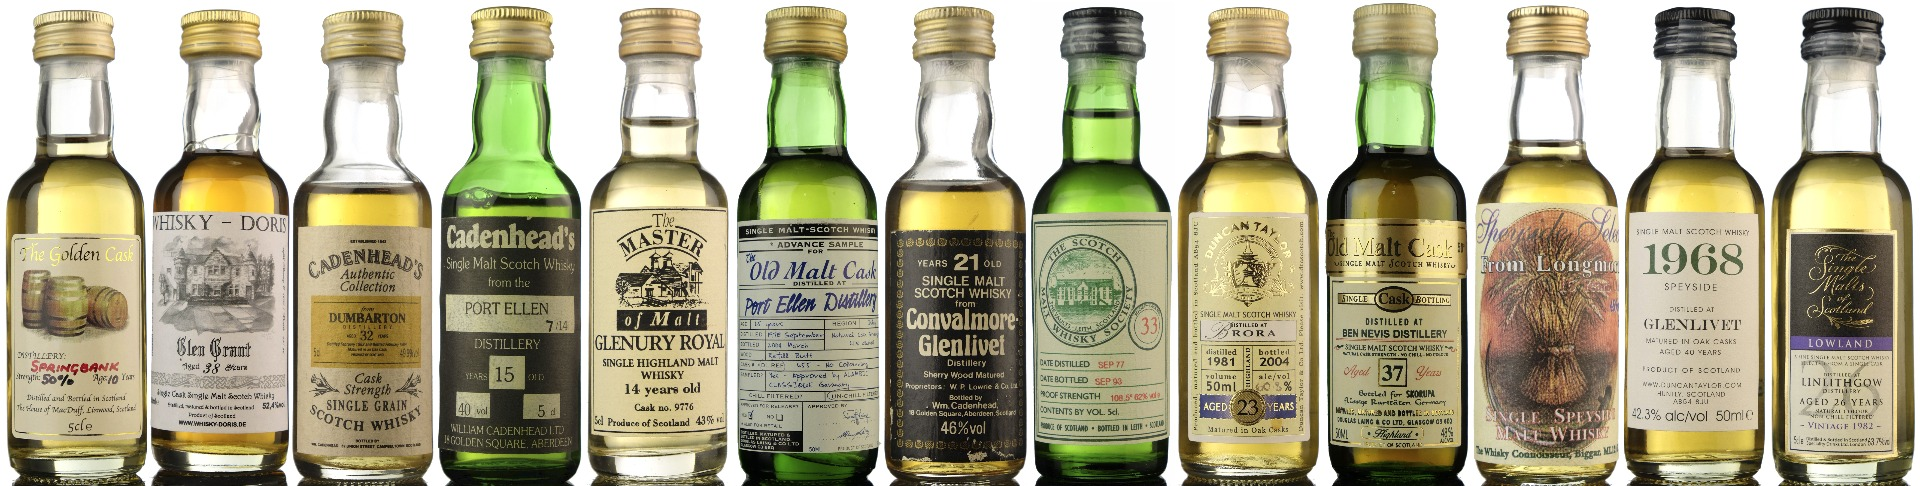 dedicated whisky miniature auction